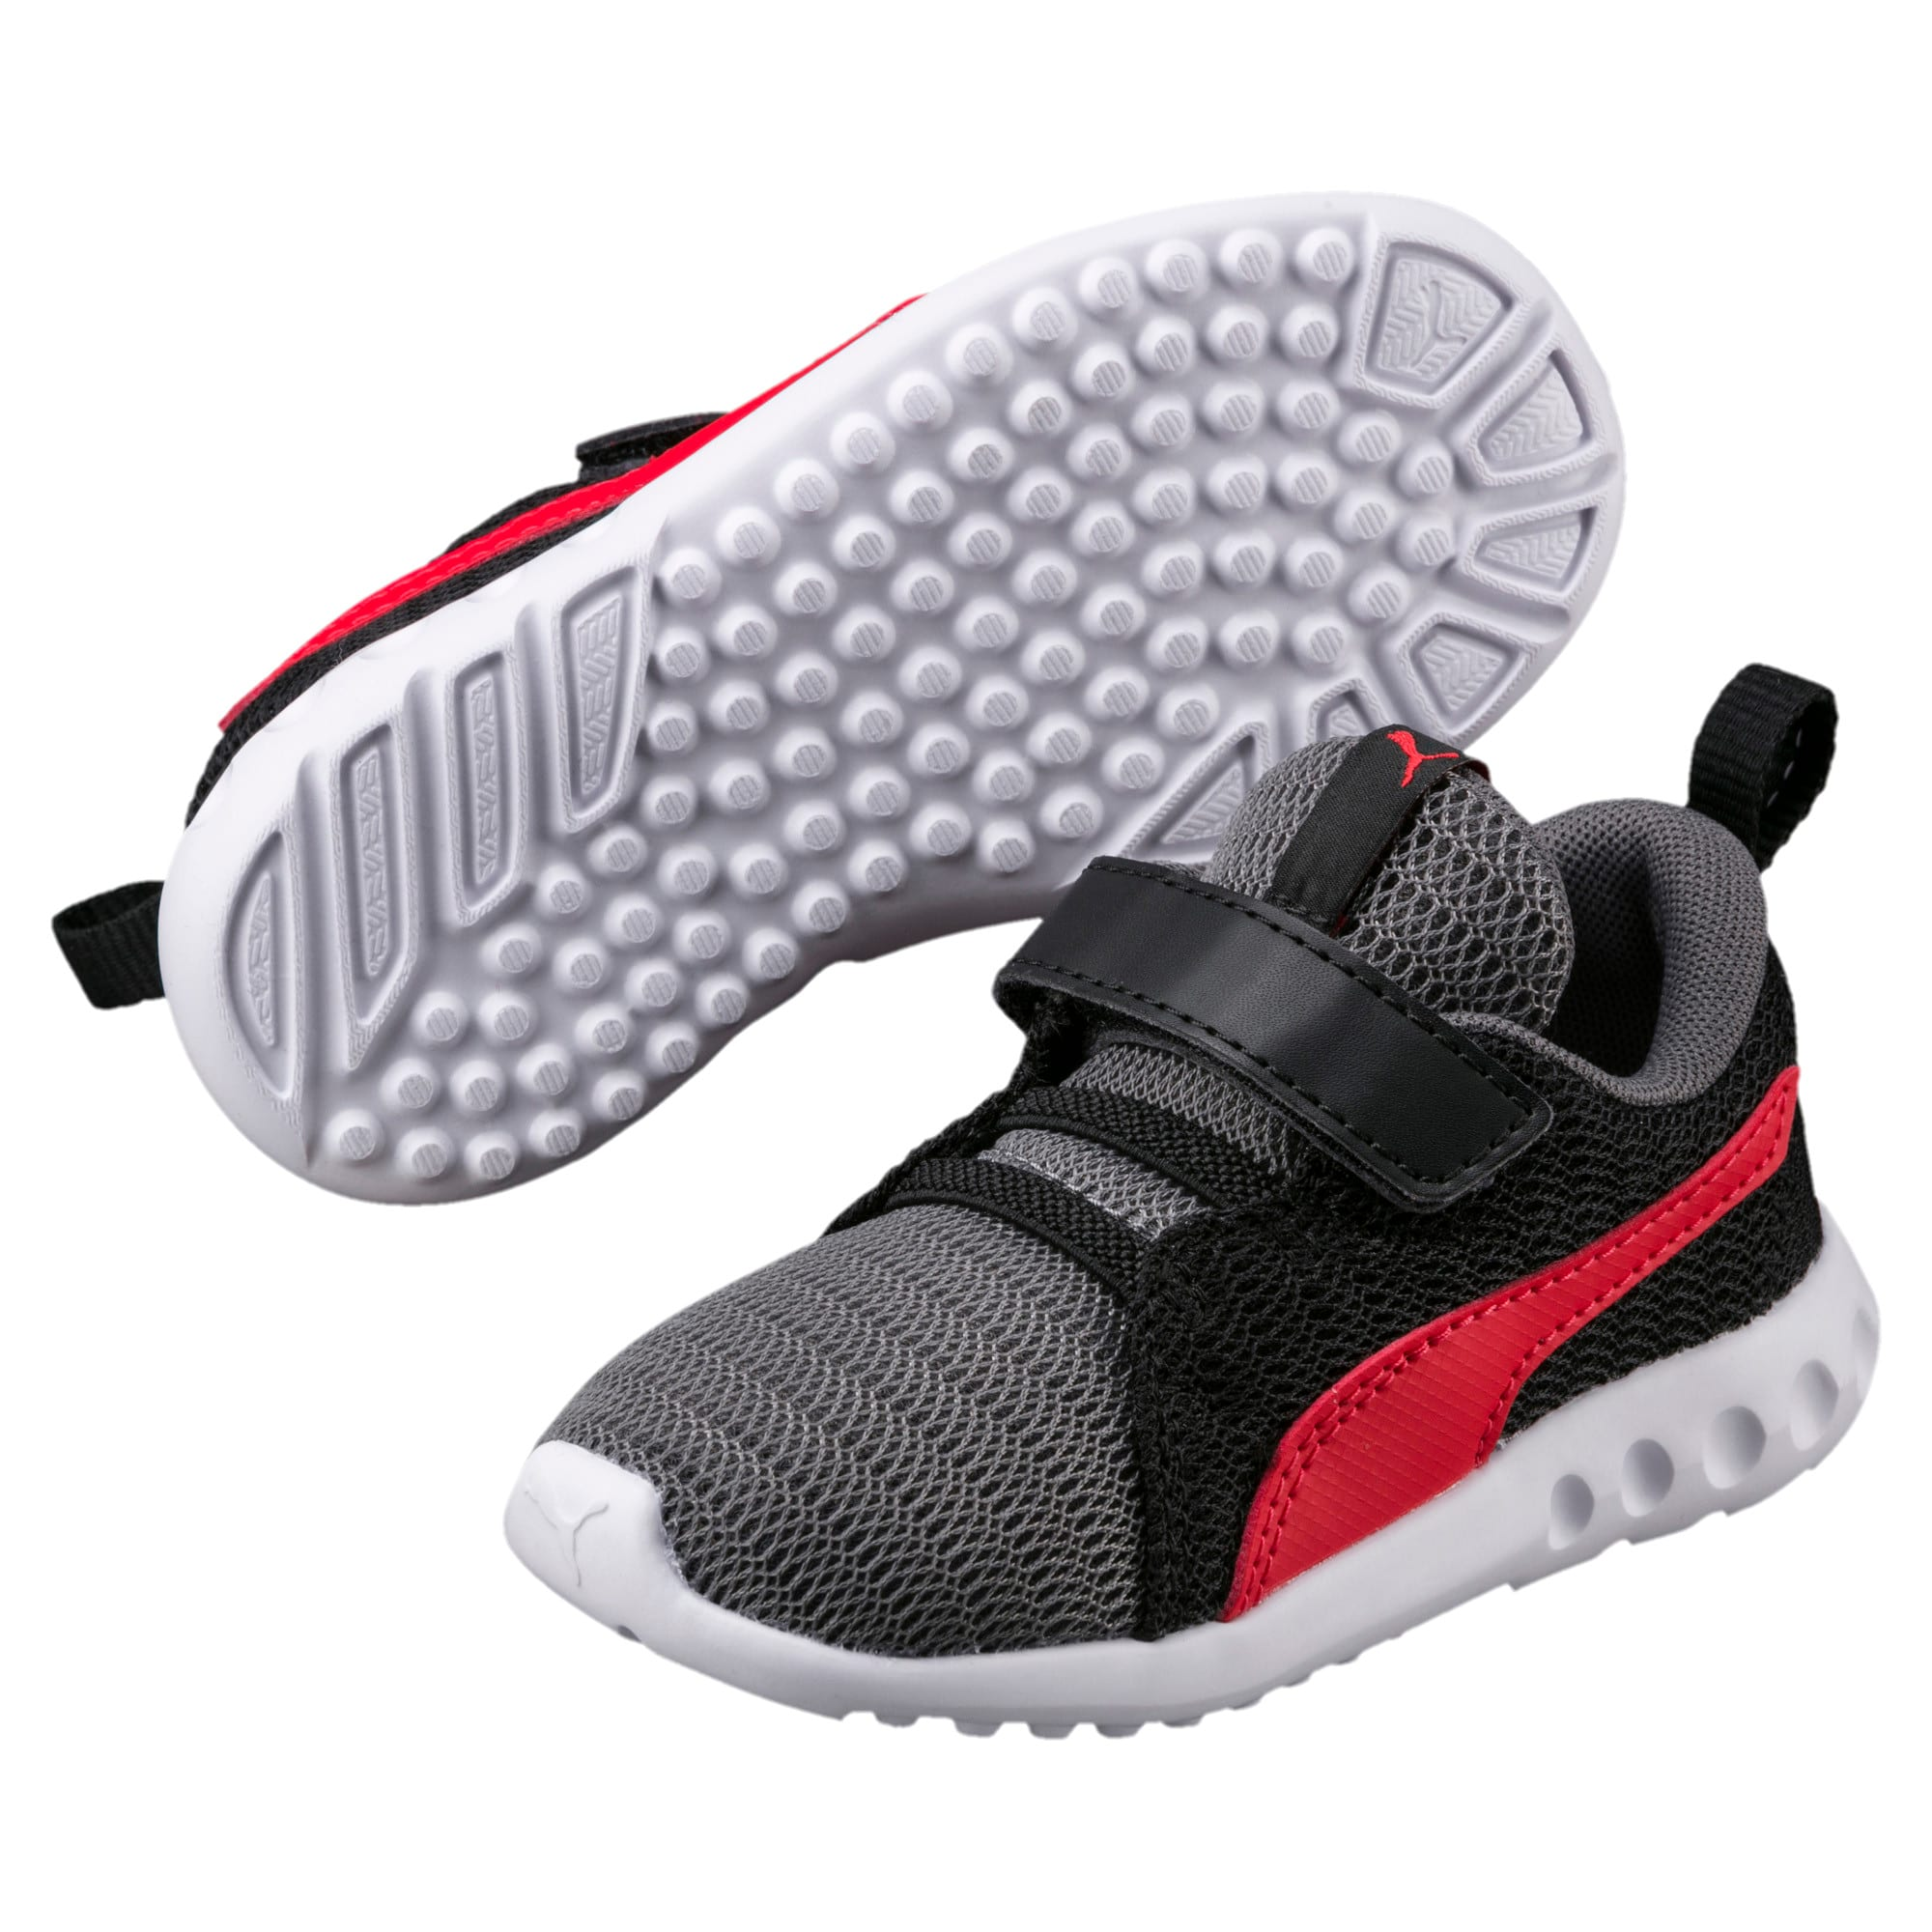 Thumbnail 2 of Carson 2 V Preschool Kids' Trainers, QUIET SHADE-Flame Scarlet, medium-IND